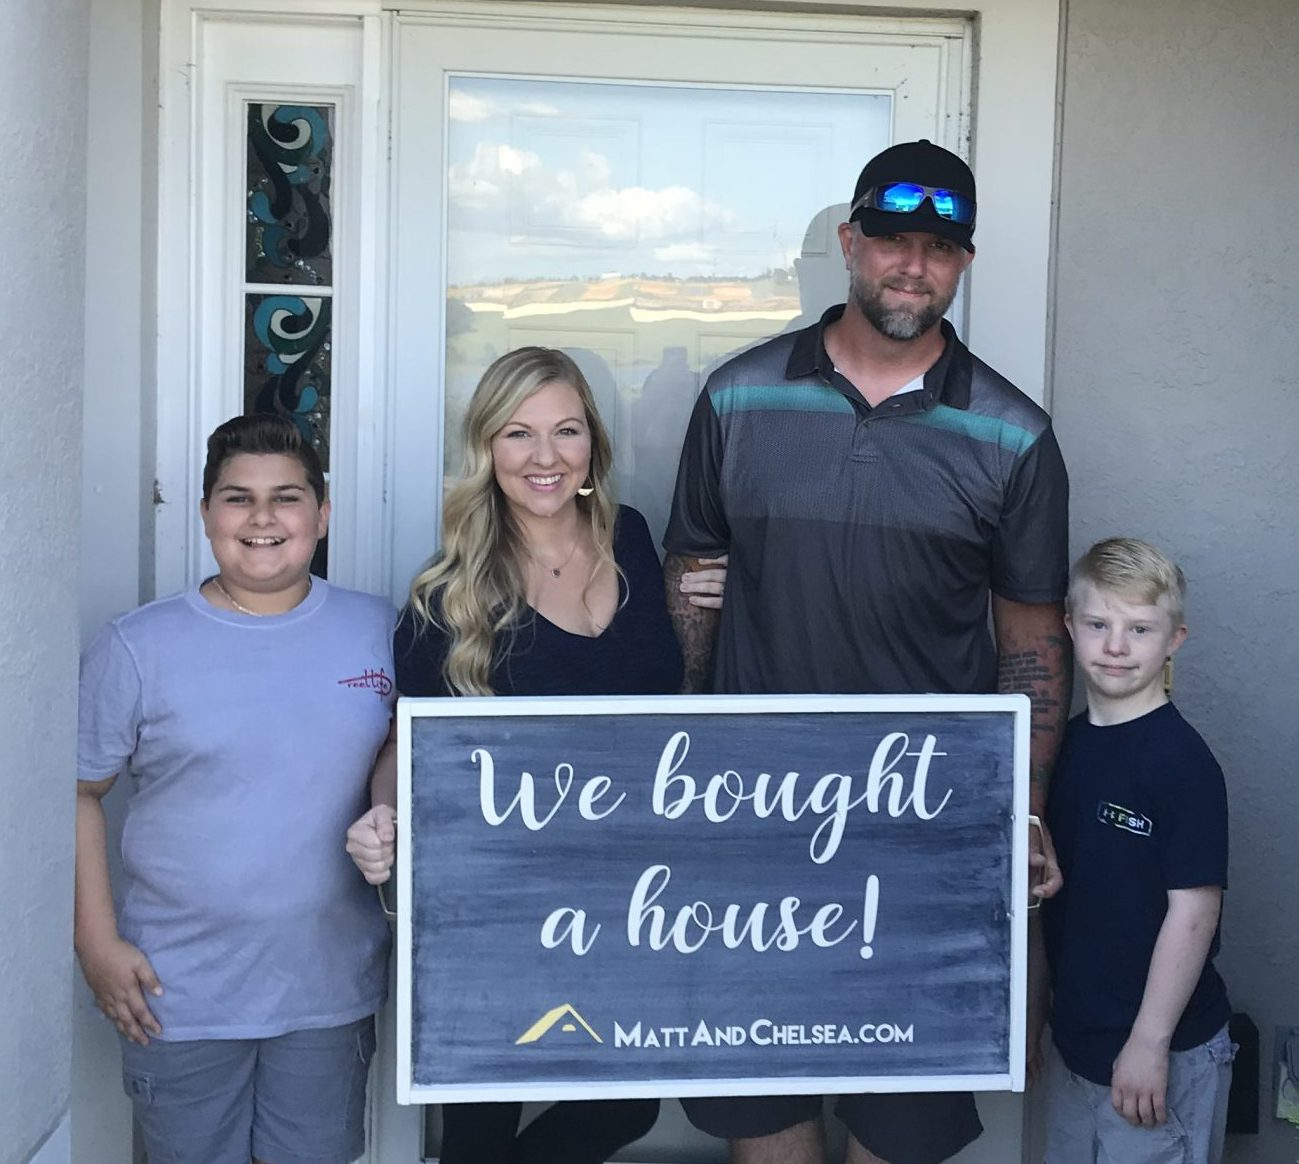 """The Burnsed family - husband, wife, and two boys - stand in front of the front door of the home they bought holding the sign, """"We bought a house!"""""""